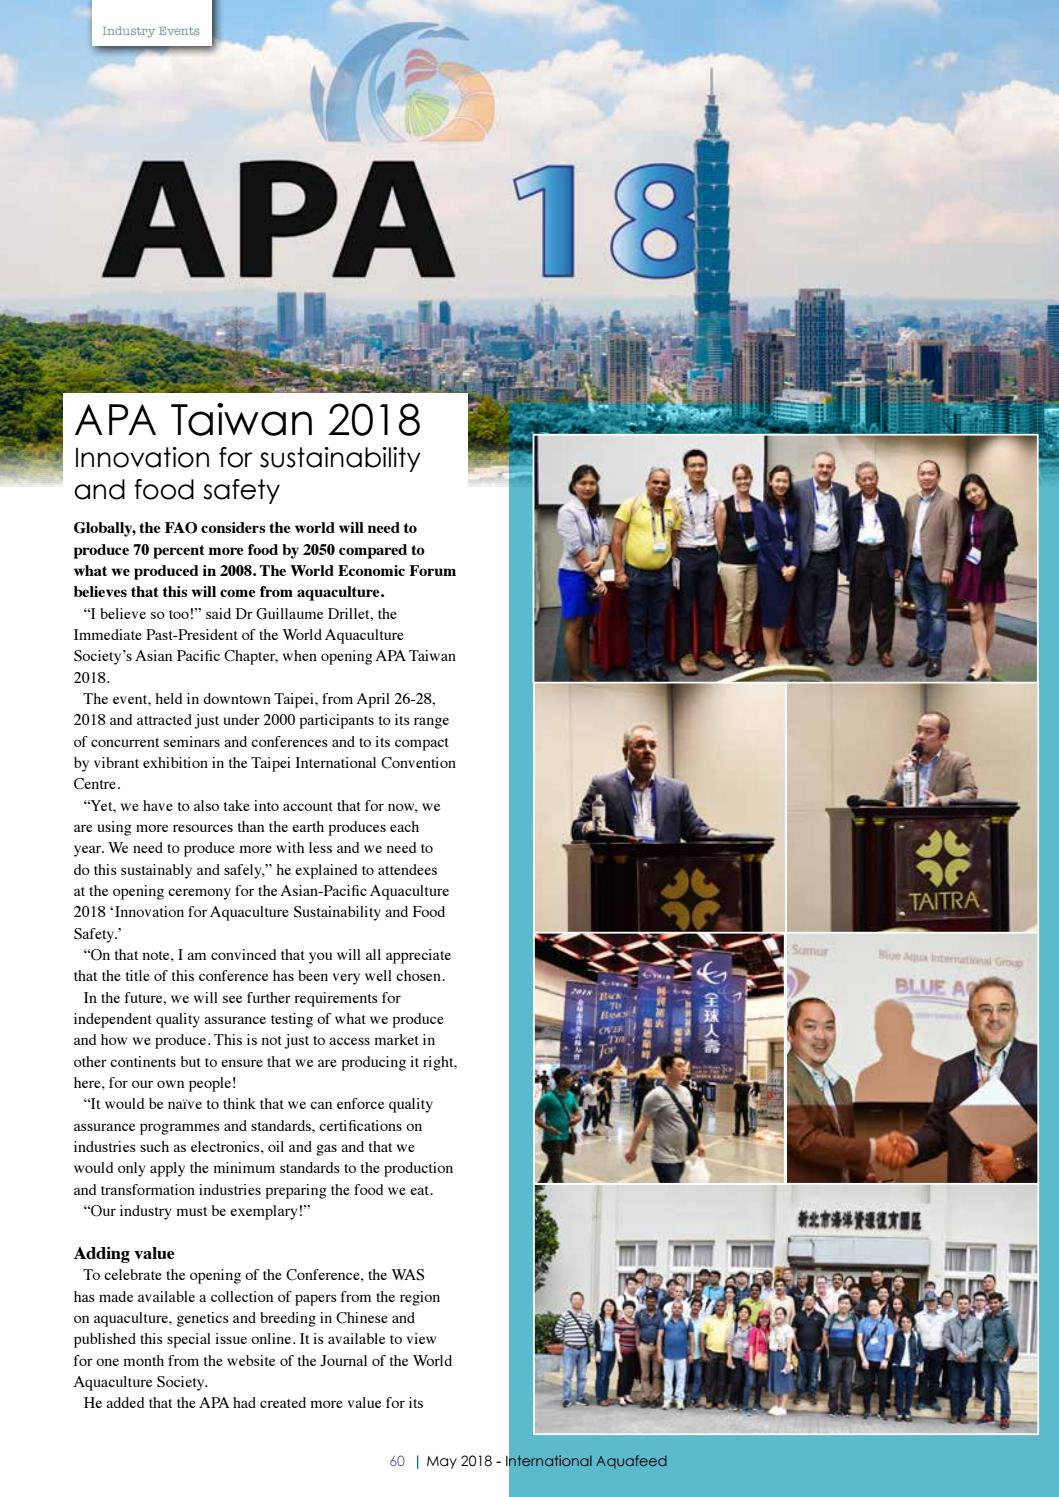 MAY 2018 - International Aquafeed magazine by Perendale